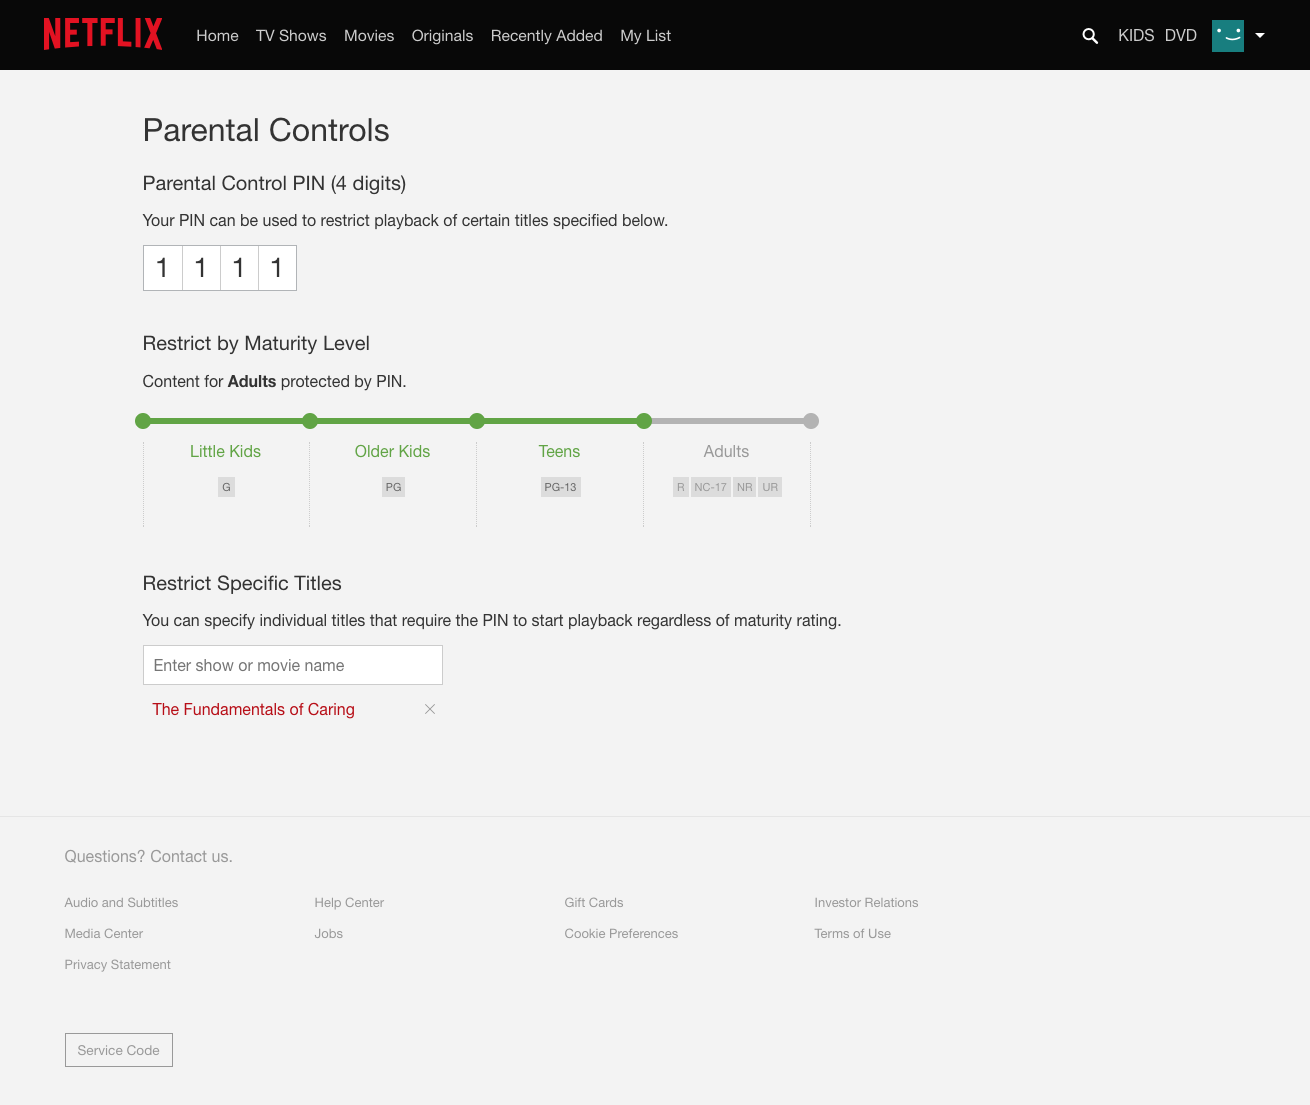 netflix parental control pin